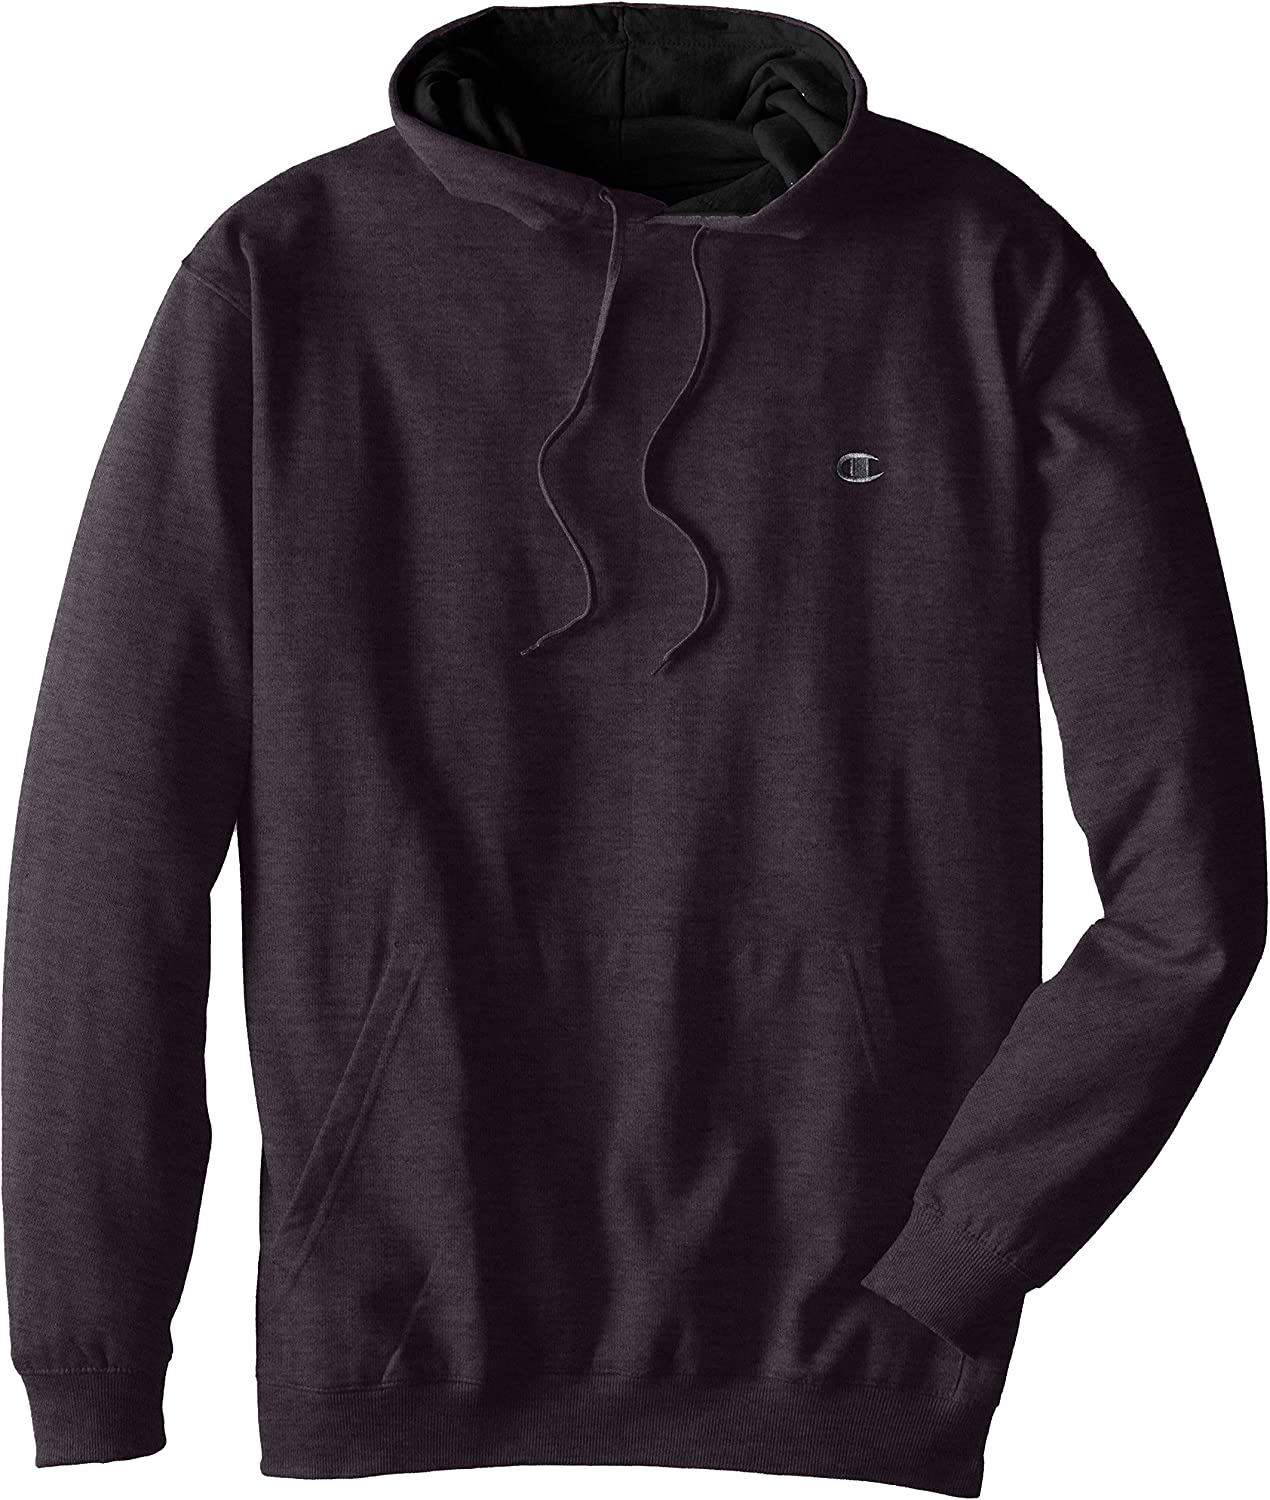 Champion Mens Big-Tall Fleece Pullover Hoodie